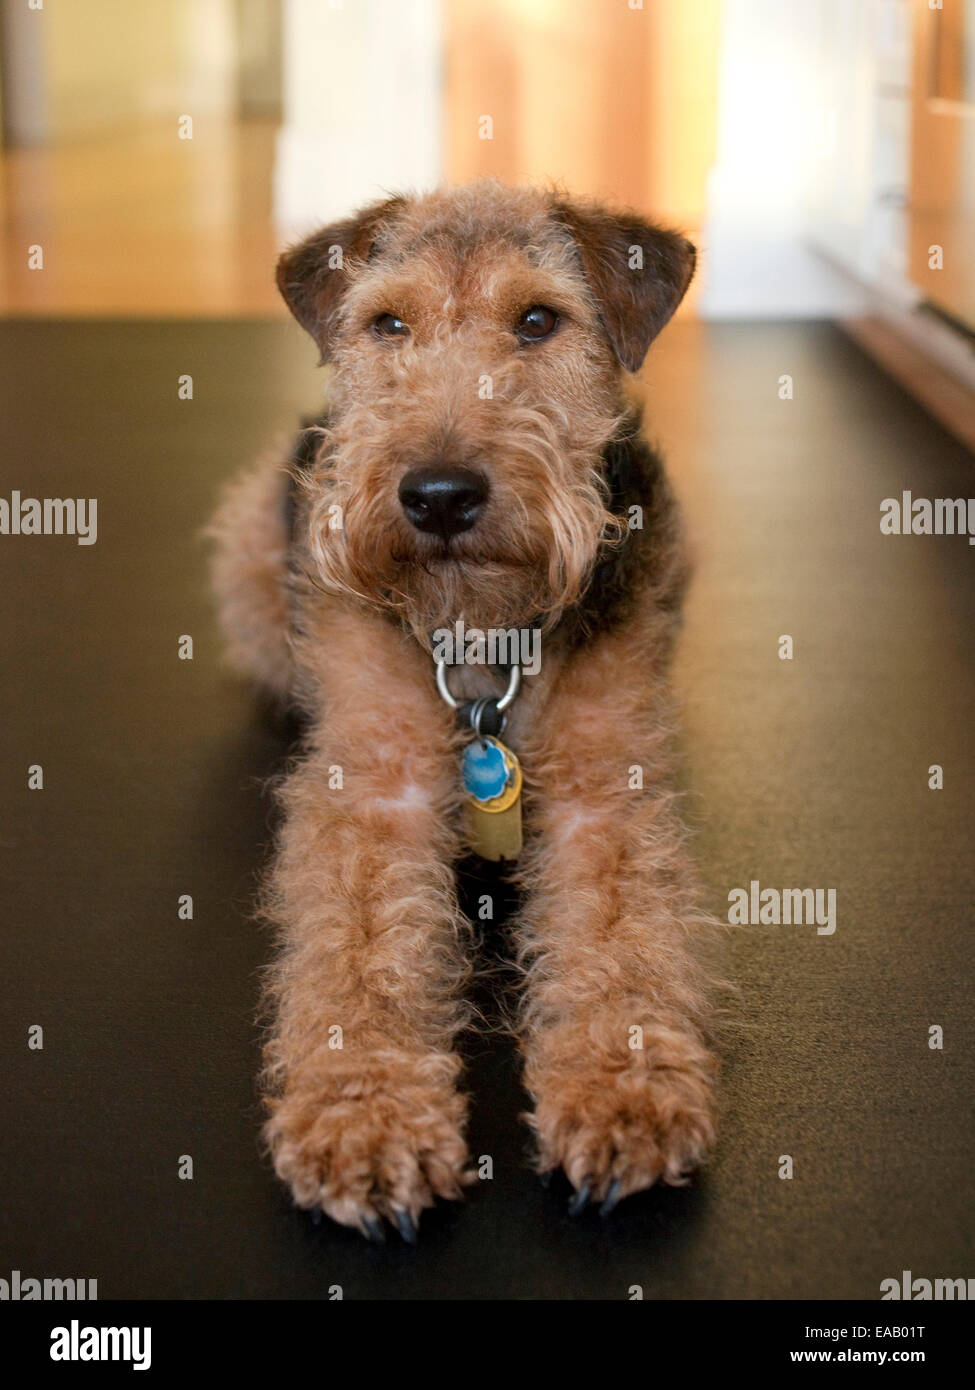 Airedale Terrier reclining on floor - Stock Image